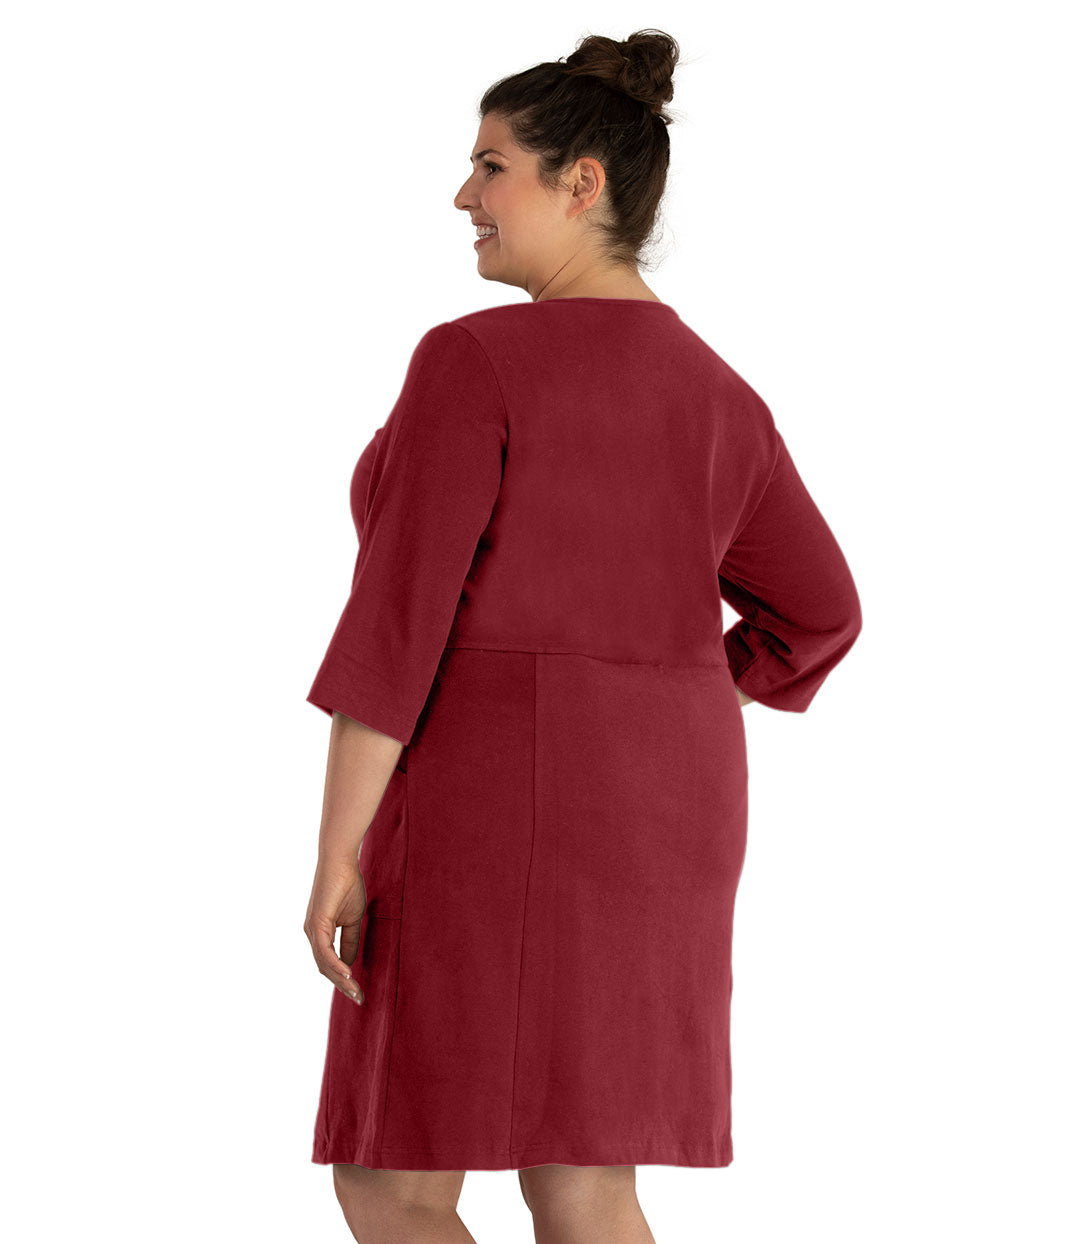 Legacy Cotton Casual 3/4 Sleeve Dress Classic Colors-Tops Dress-Hop Wo Trading Co Ltd-XL-Garnet-JunoActive